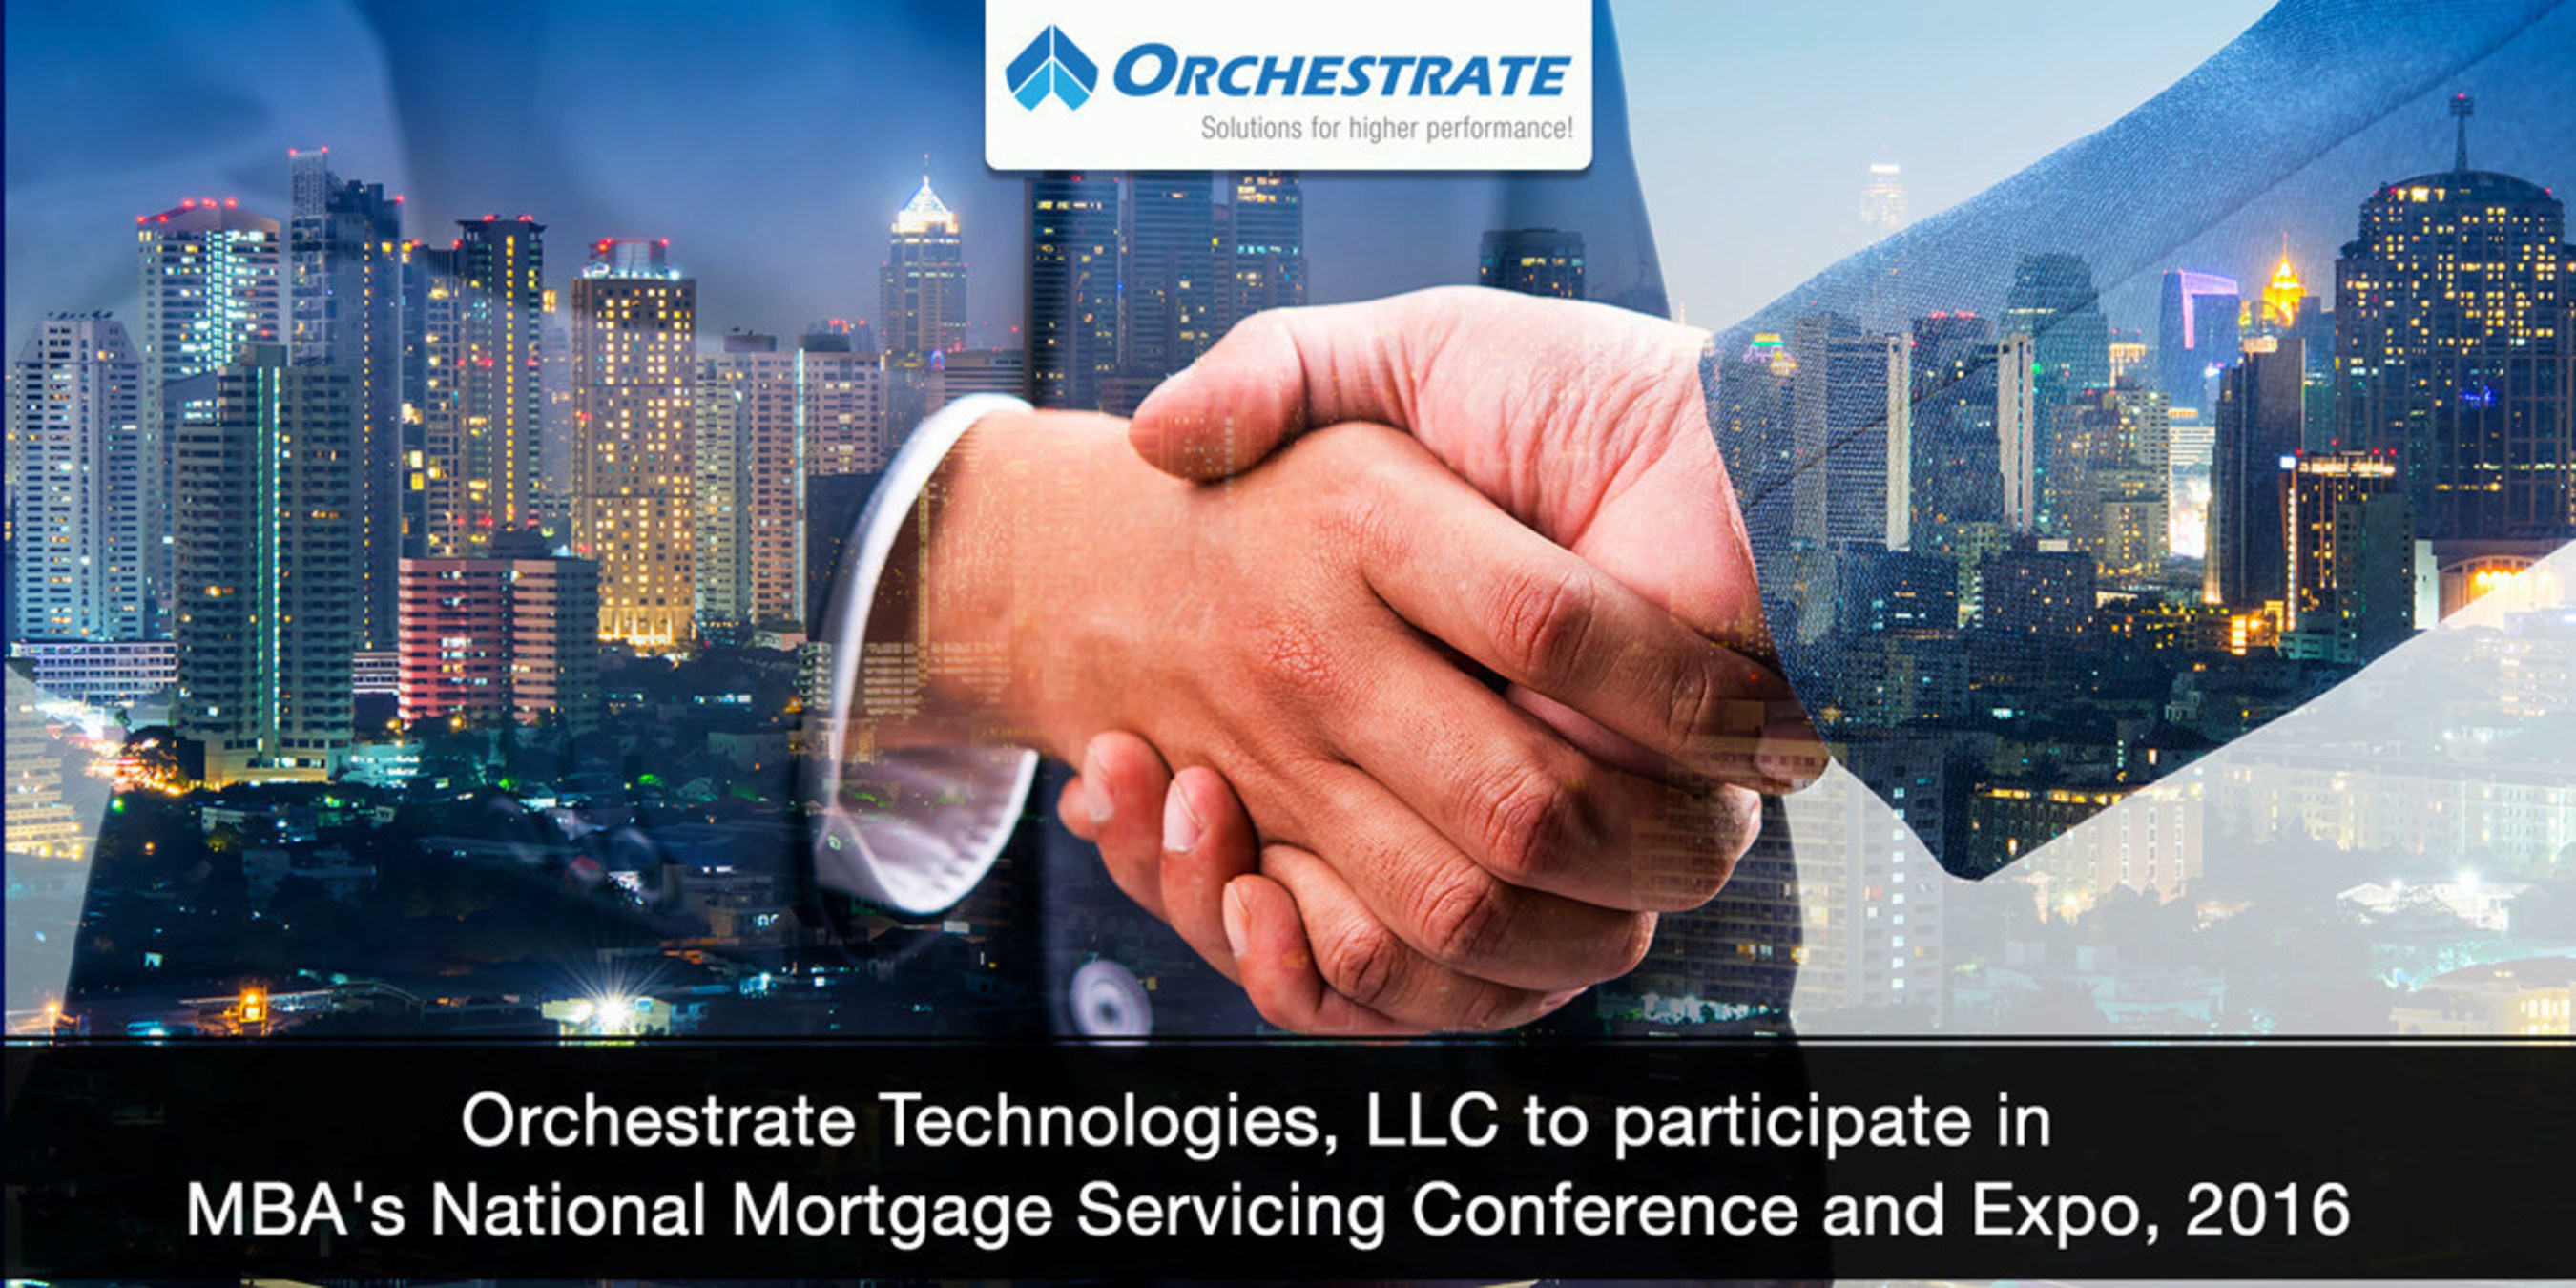 Orchestrate Technologies, LLC to Participate in MBA's National Mortgage Servicing Conference and Expo, 2016